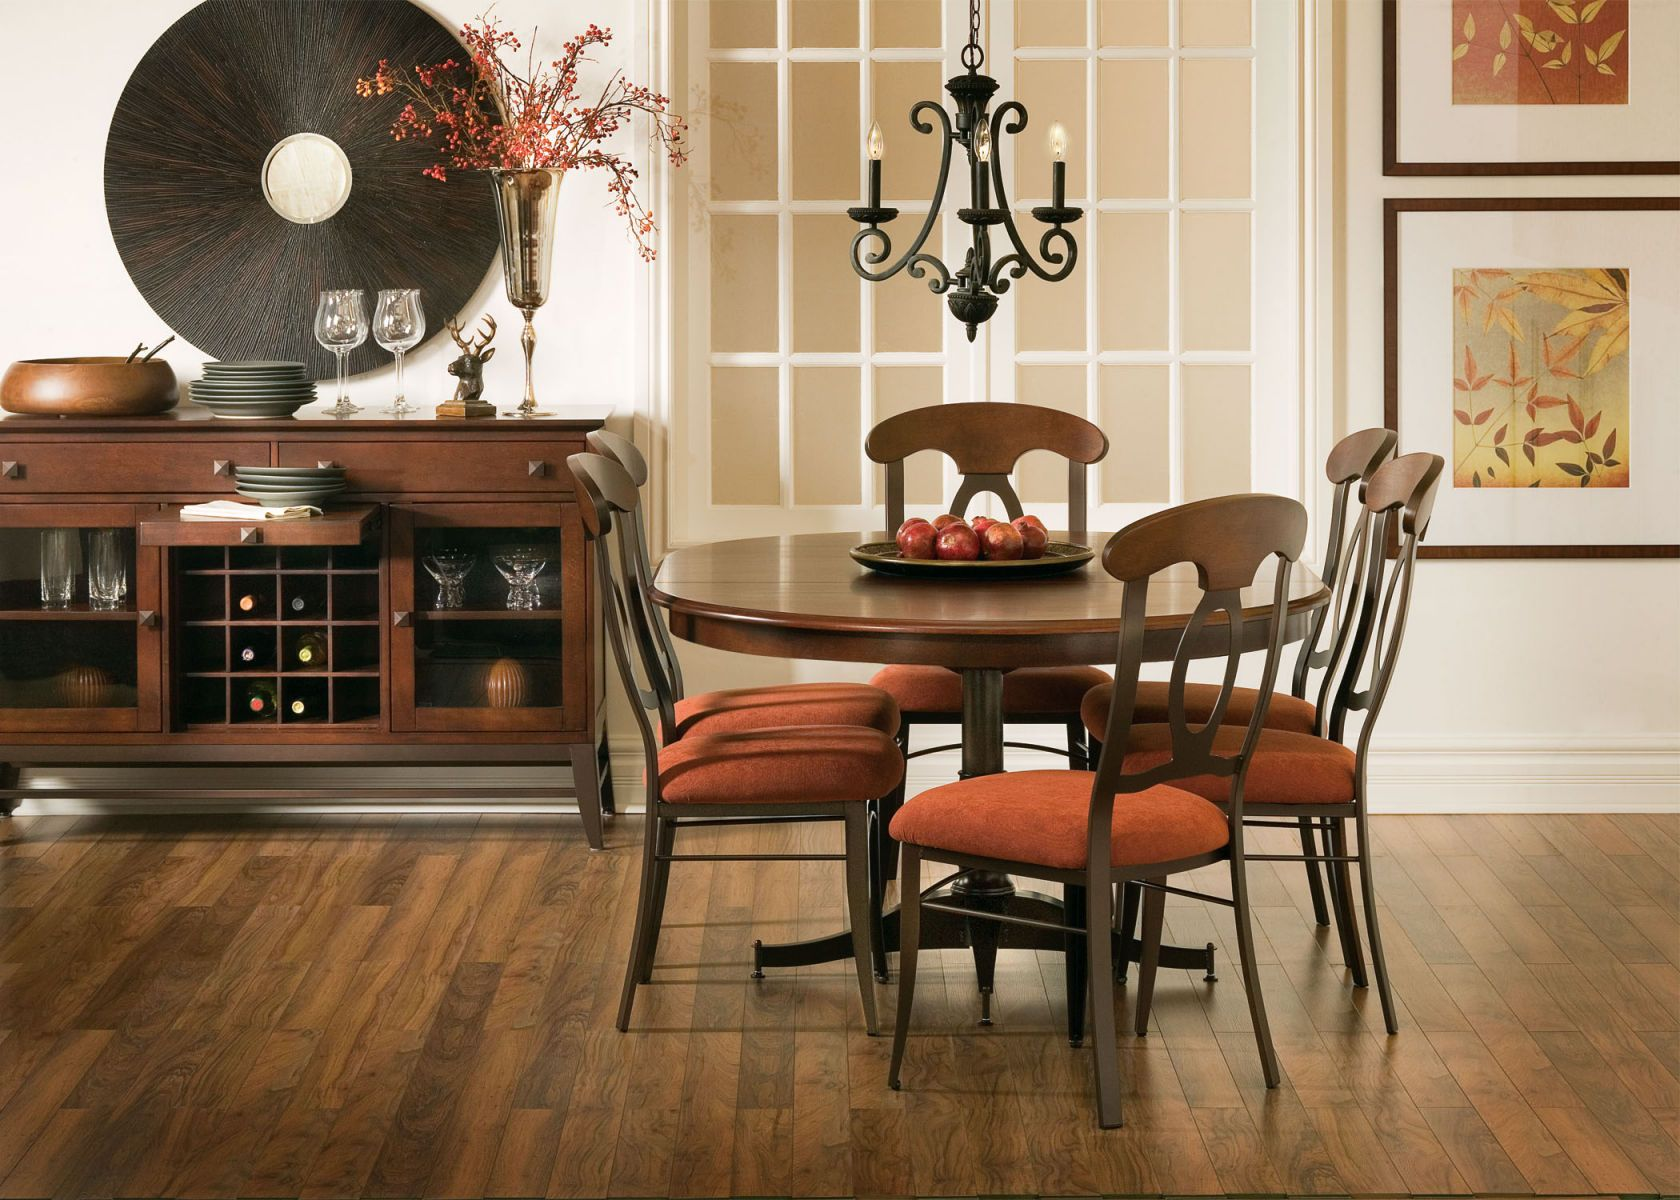 Amisco Dinette Set  Price Upon Request   Call (631) 742-1351 for Best Price Guarantee